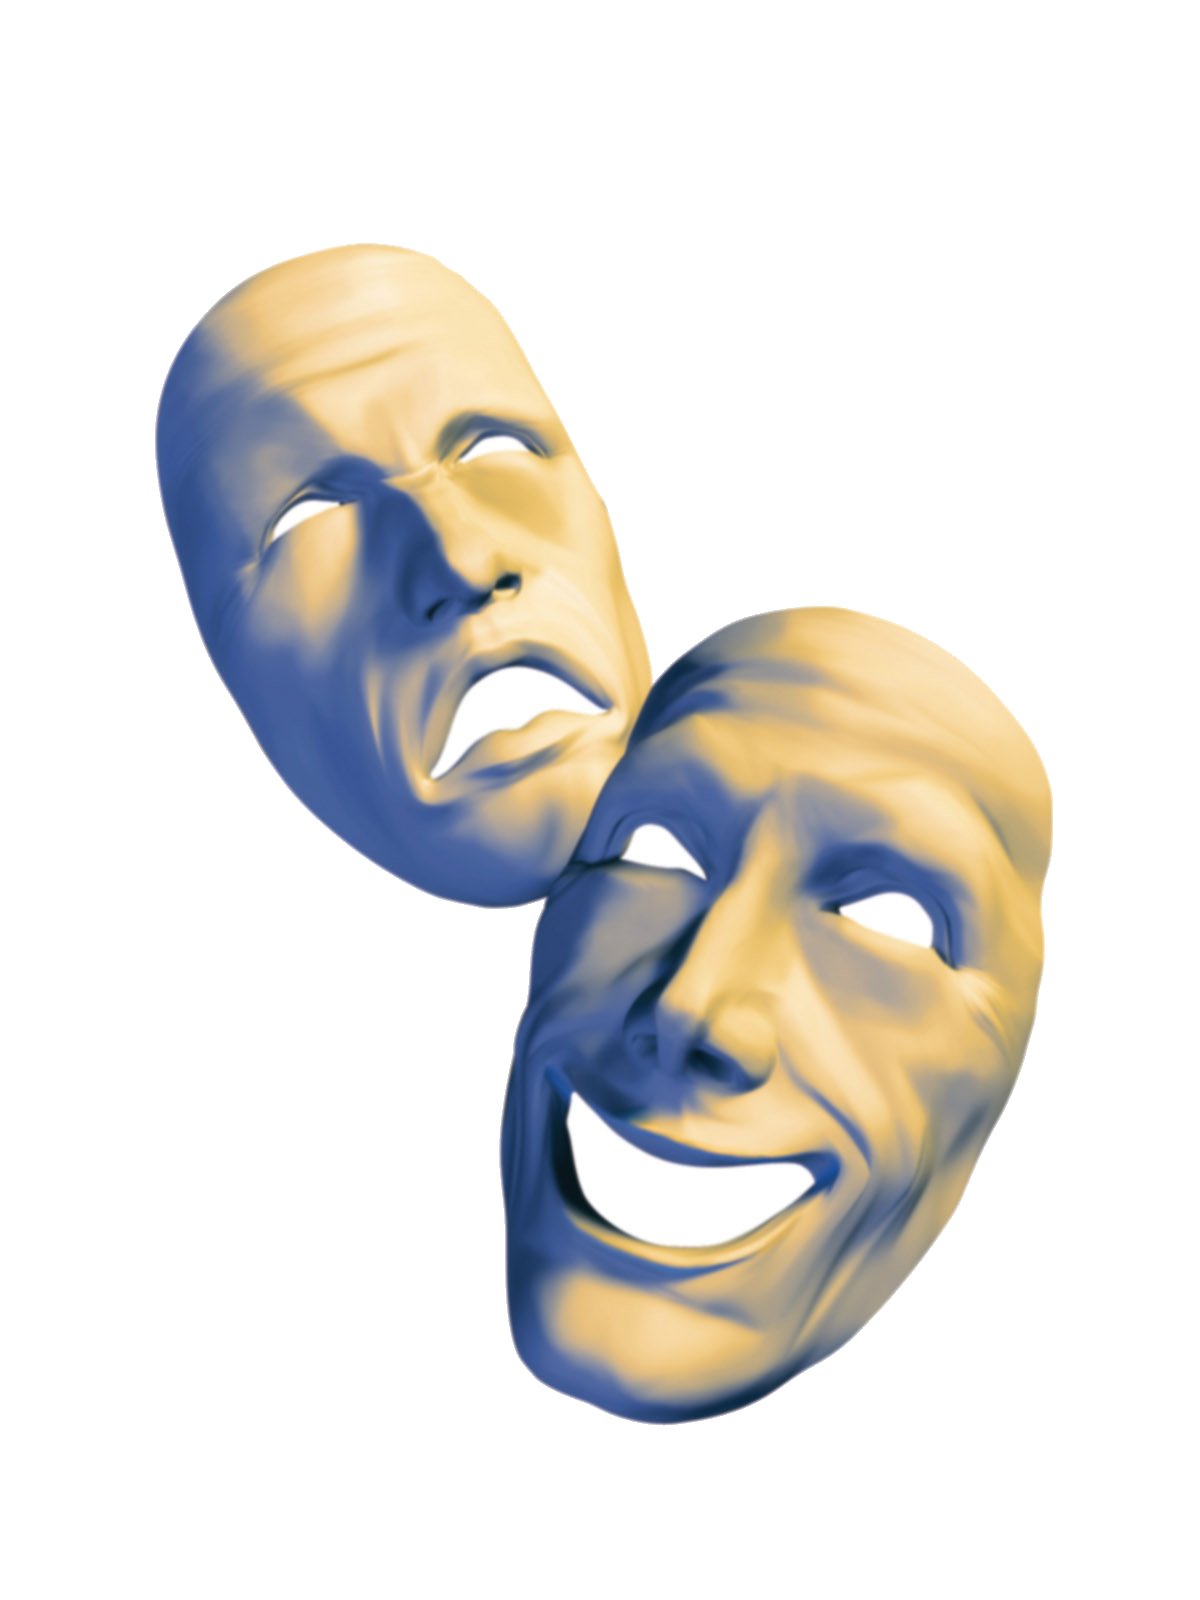 Free theatre download clip. Theater vector laughing mask picture library stock